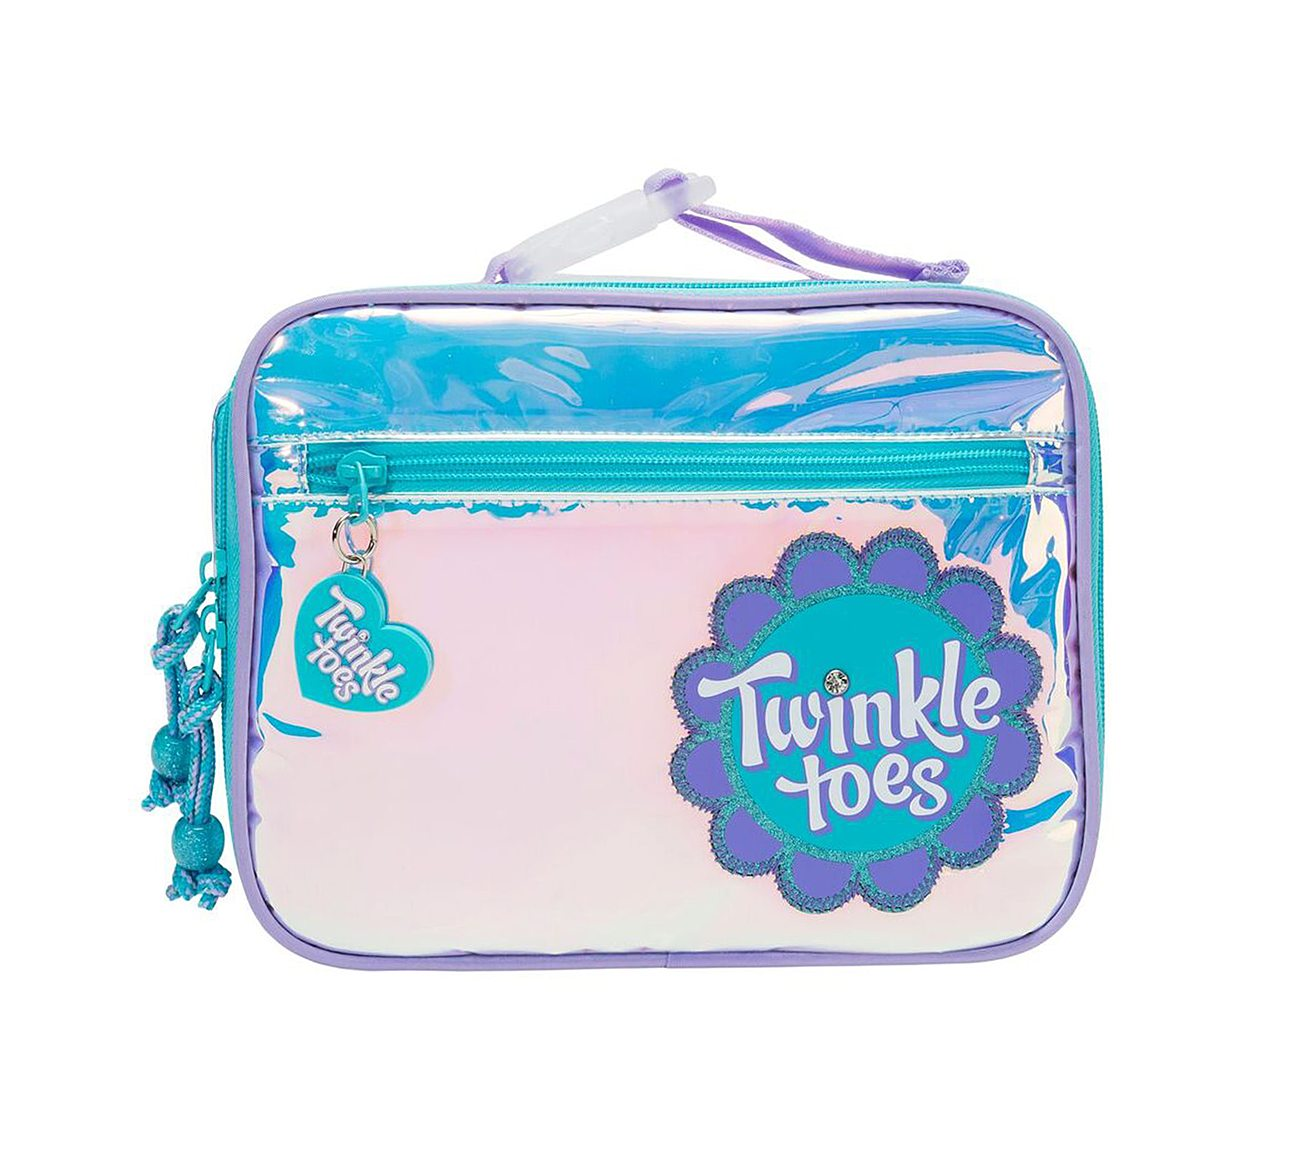 Twinkle Toes: Glo Lunchbox